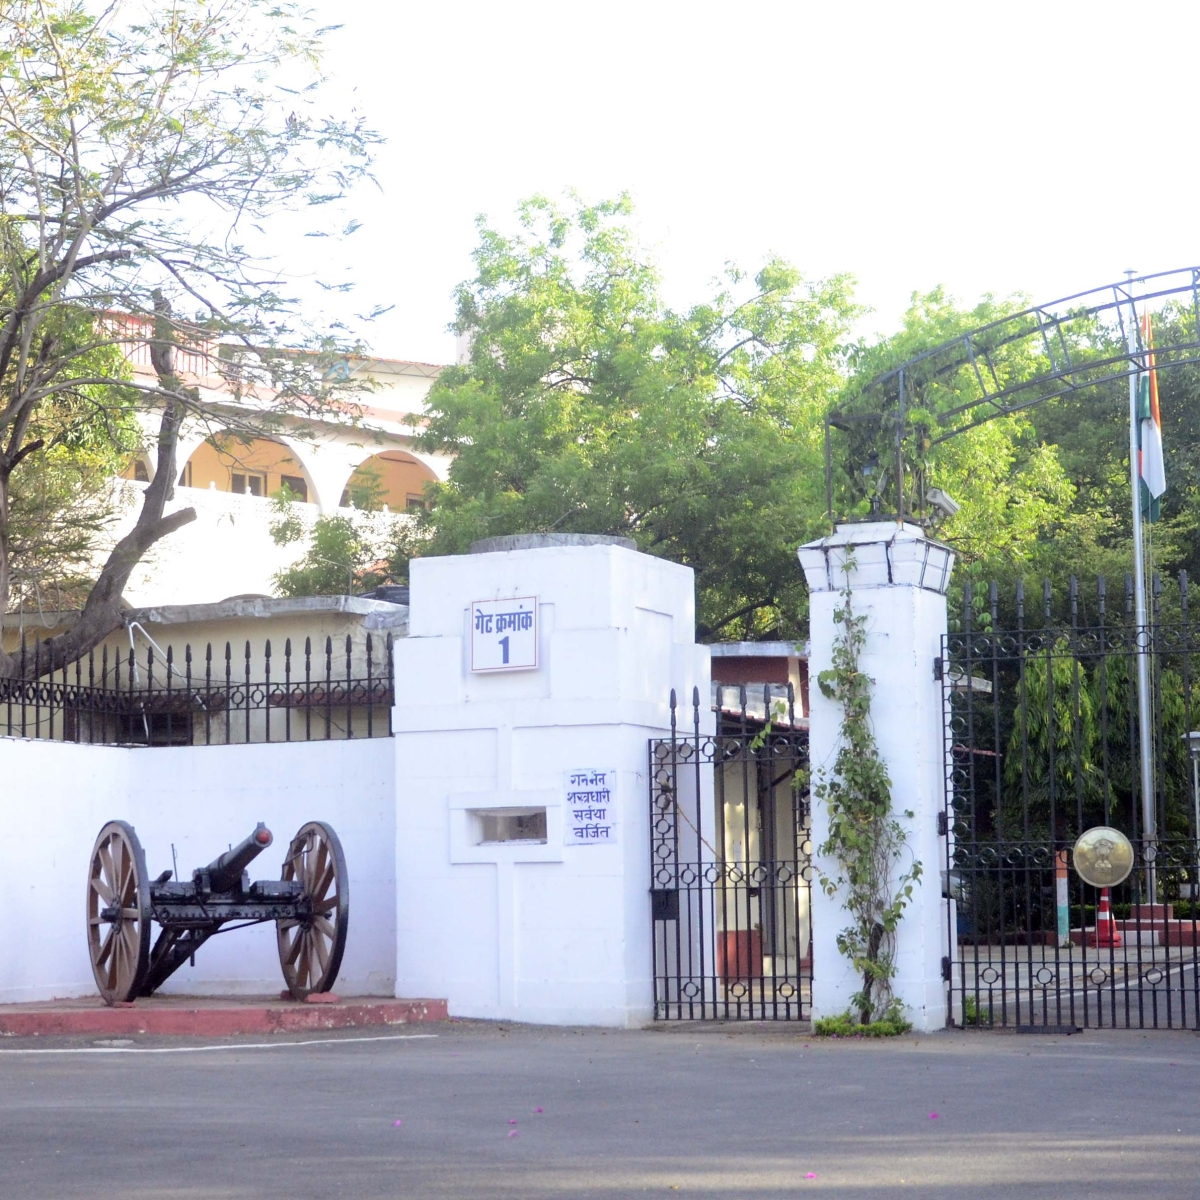 Coronavirus in Bhopal: A day after Raj Bhavan 'declared' containment-free, staff tests positive